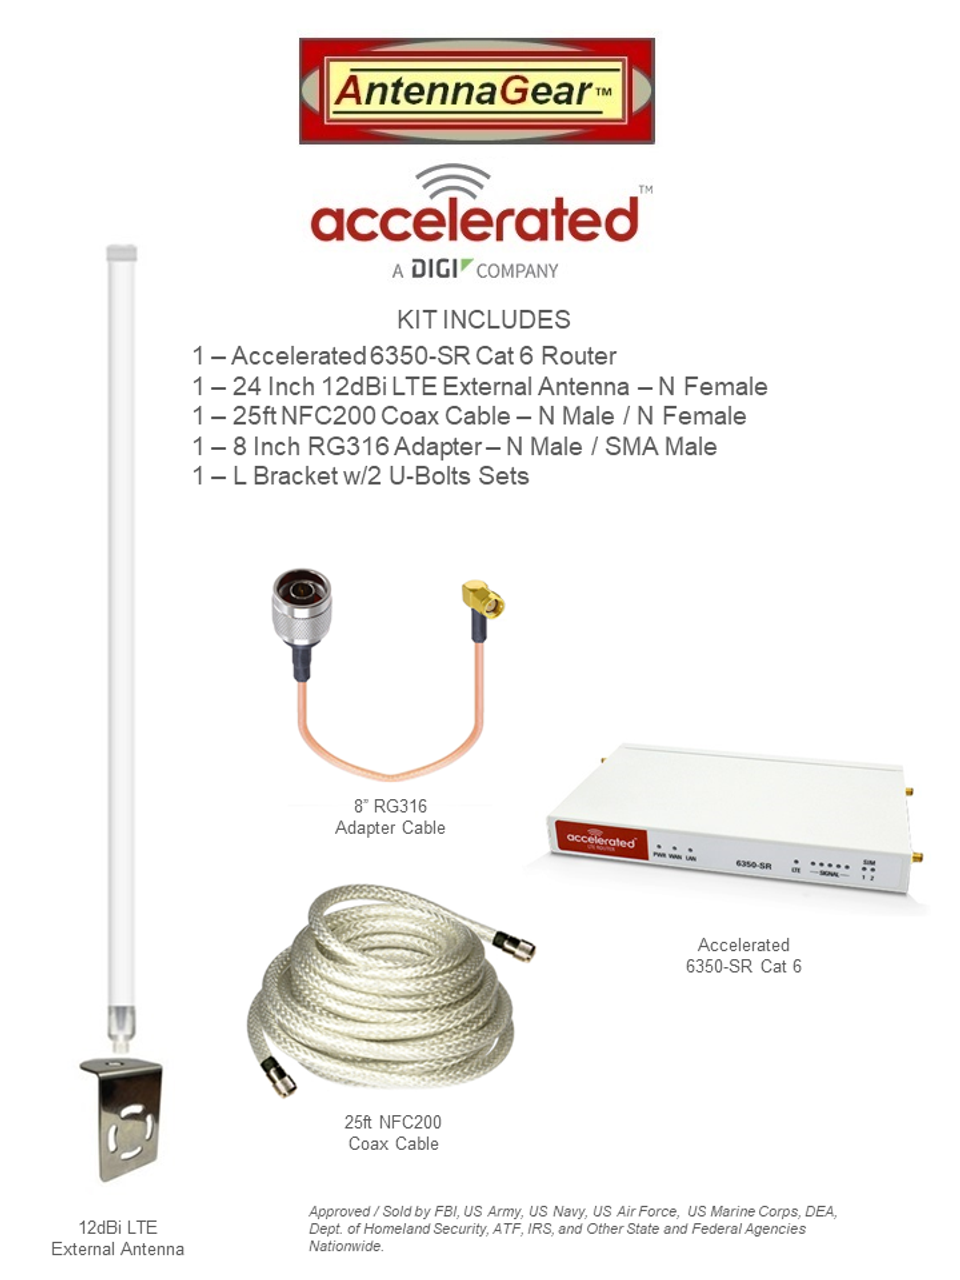 Accelerated 6350-SR LTE Router CAT 6 w/ 12dBi LTE Antenna, 25 FT Cable + Adapter - SMA Male